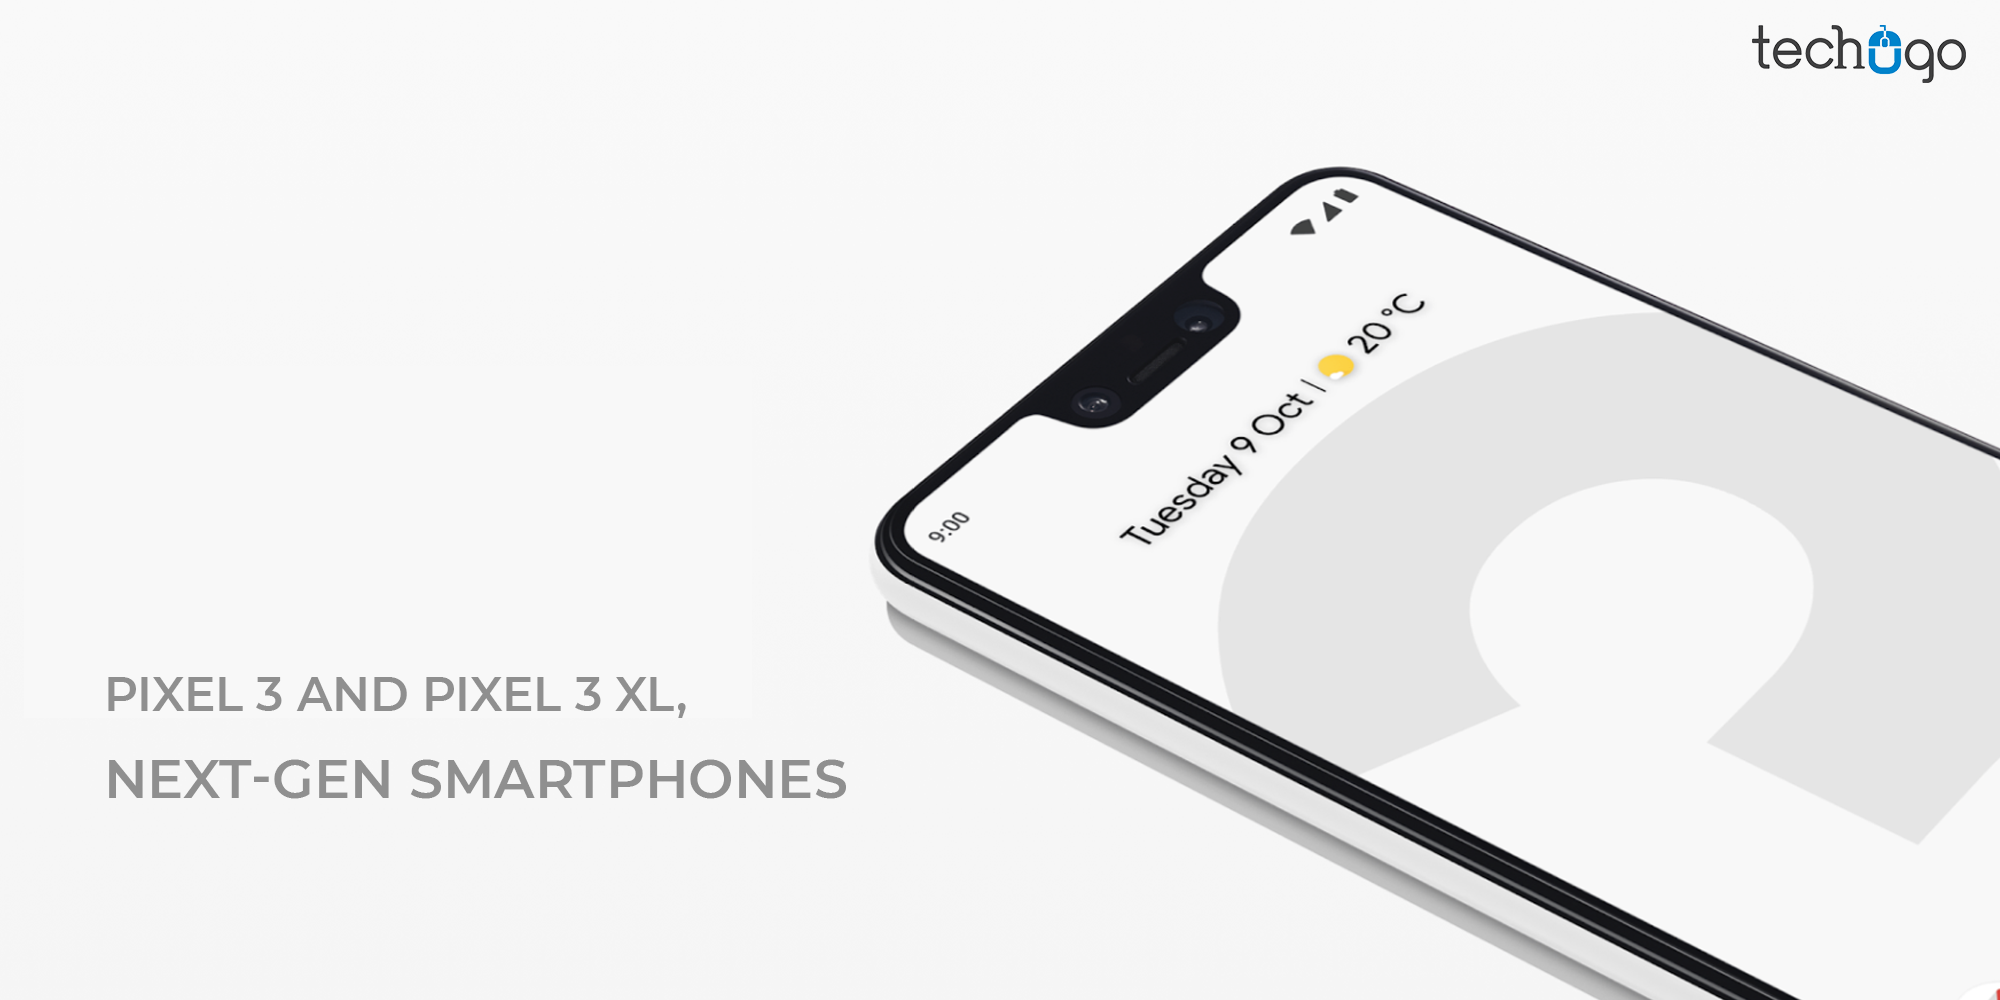 2-Pixel 3 And Pixel 3 Xl Next-Gen Smartphones